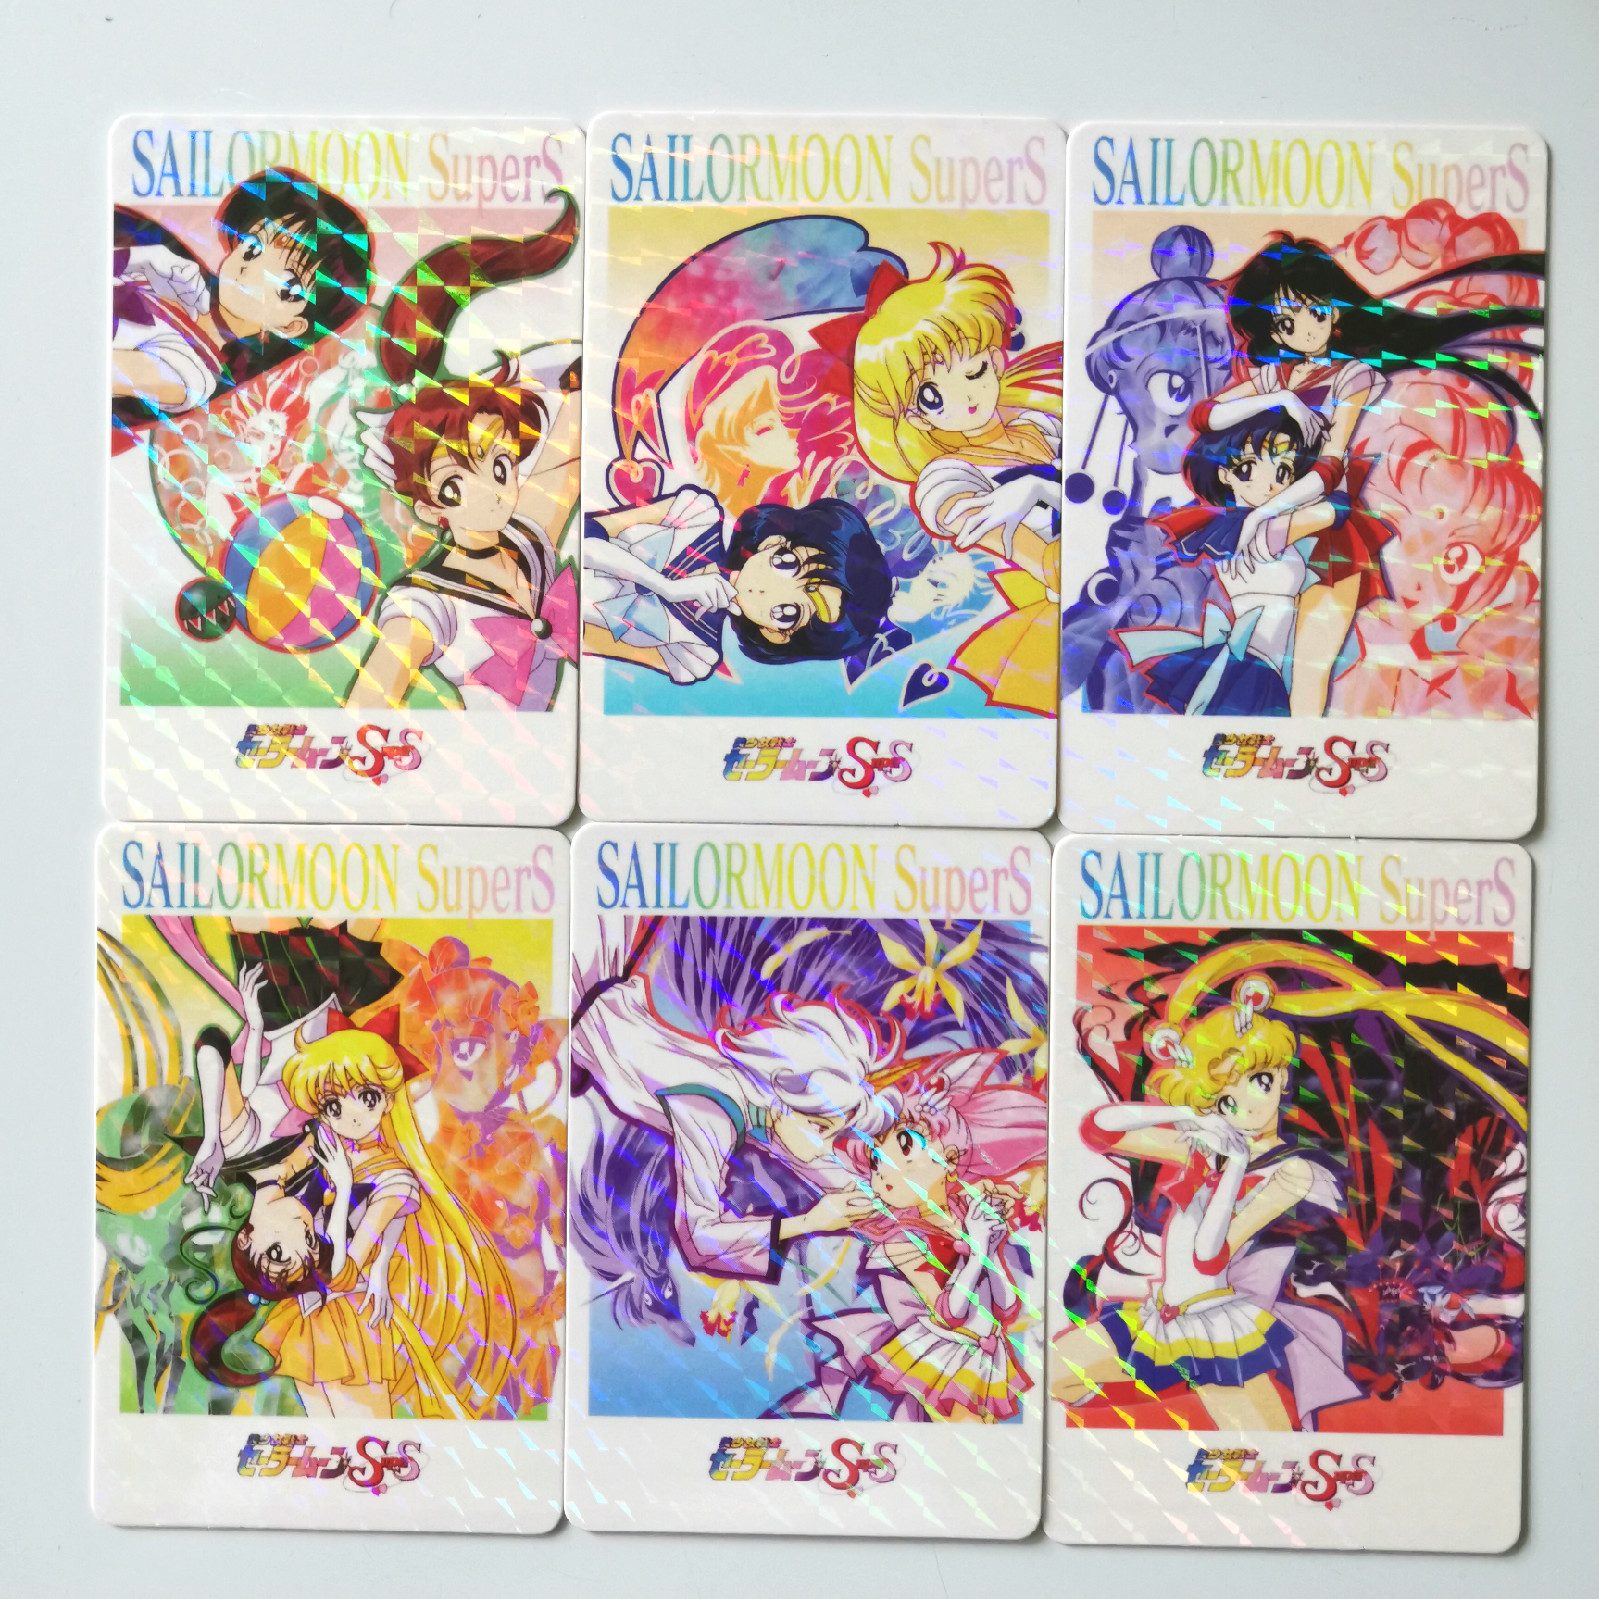 45pcs/set Sailor Moon Diamond Flash Toys Hobbies Hobby Collectibles Game Collection Anime Cards